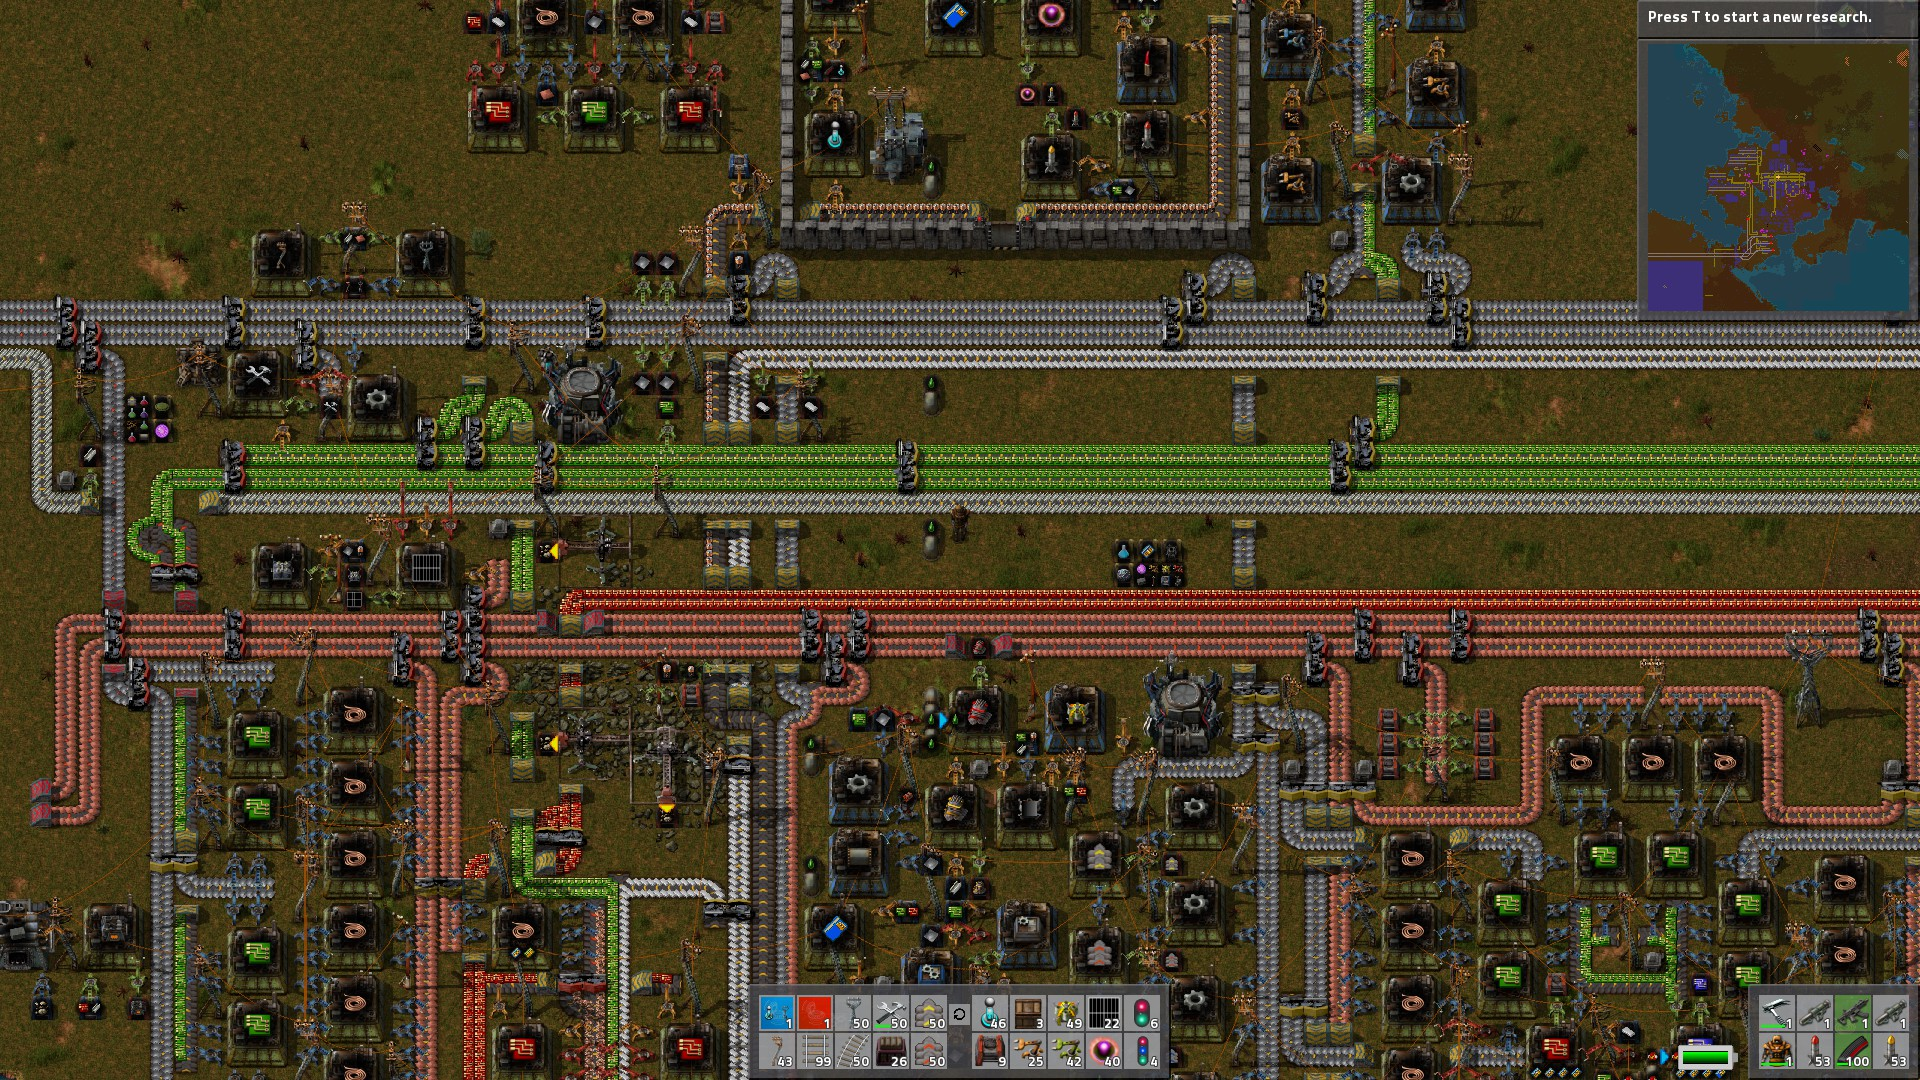 How Many Lanes Should A Bus Have? : factorio